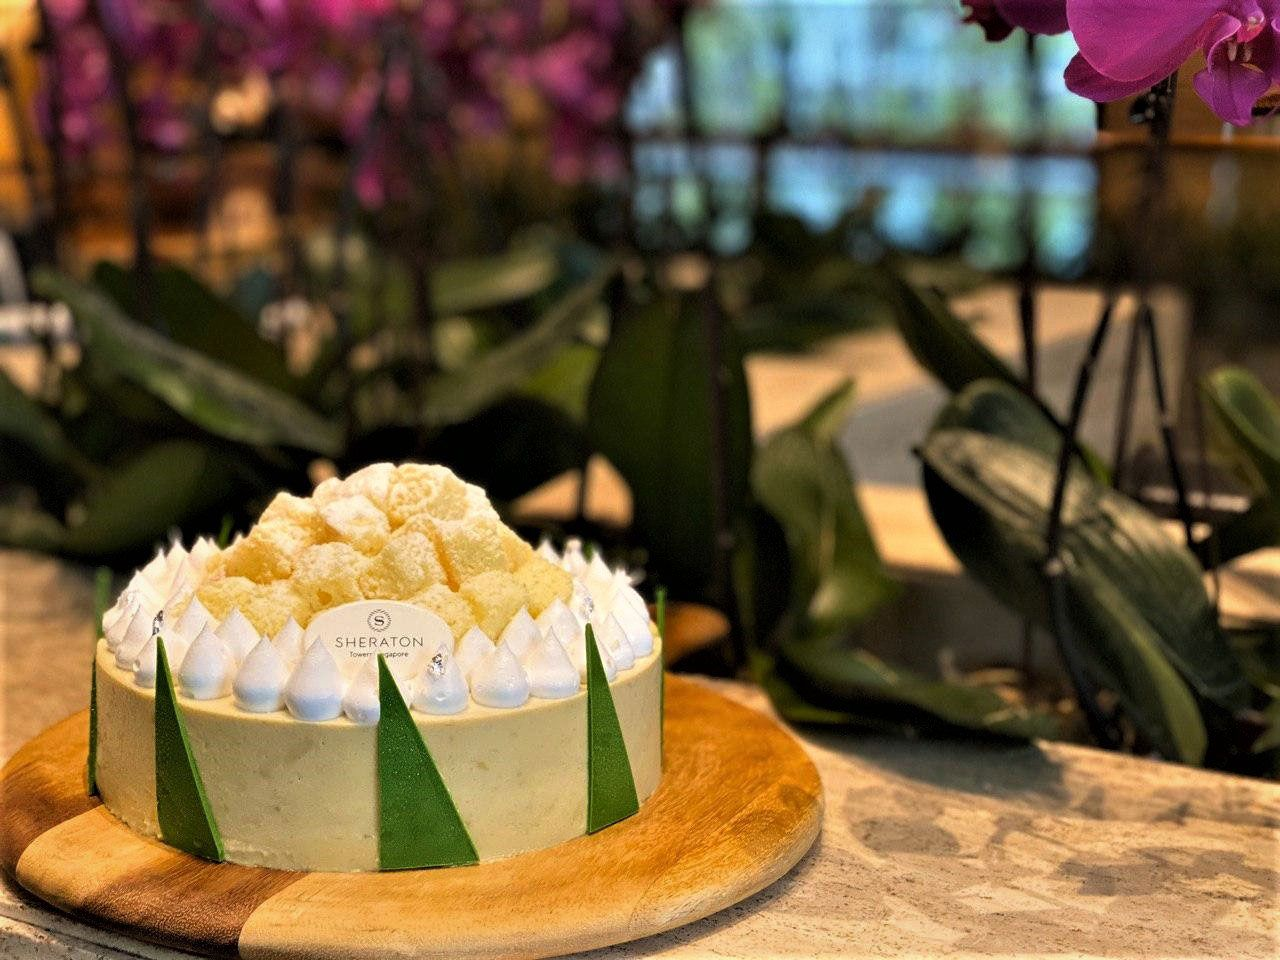 The Best Durian Confections in Singapore